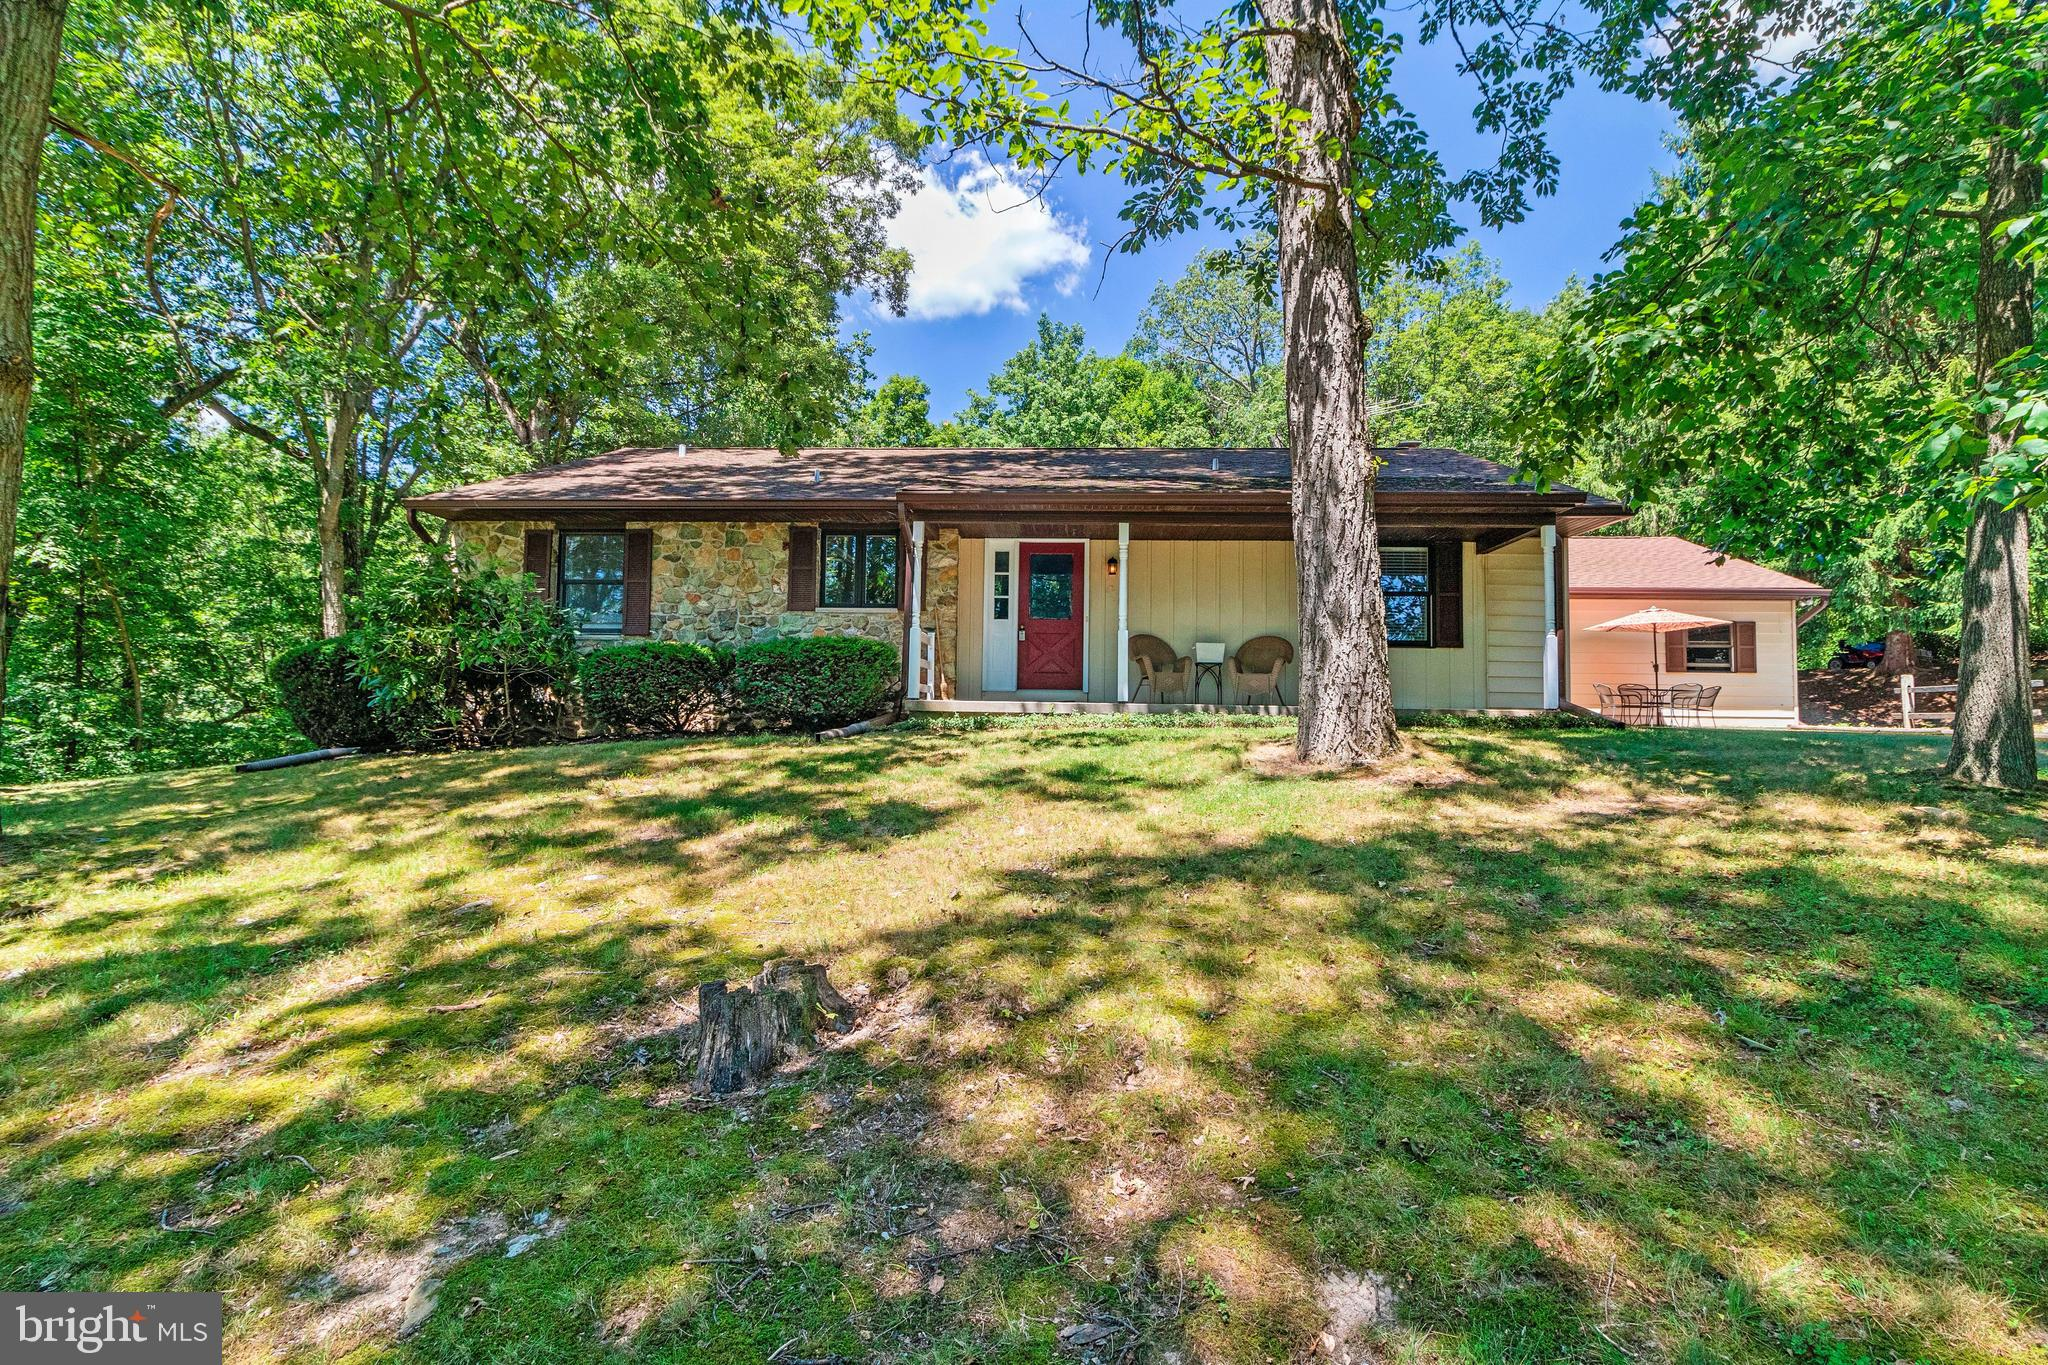 Beautifully updated 3 BR 2.5 BA Rancher in a private wooded setting. Stainless steel appliances, gra